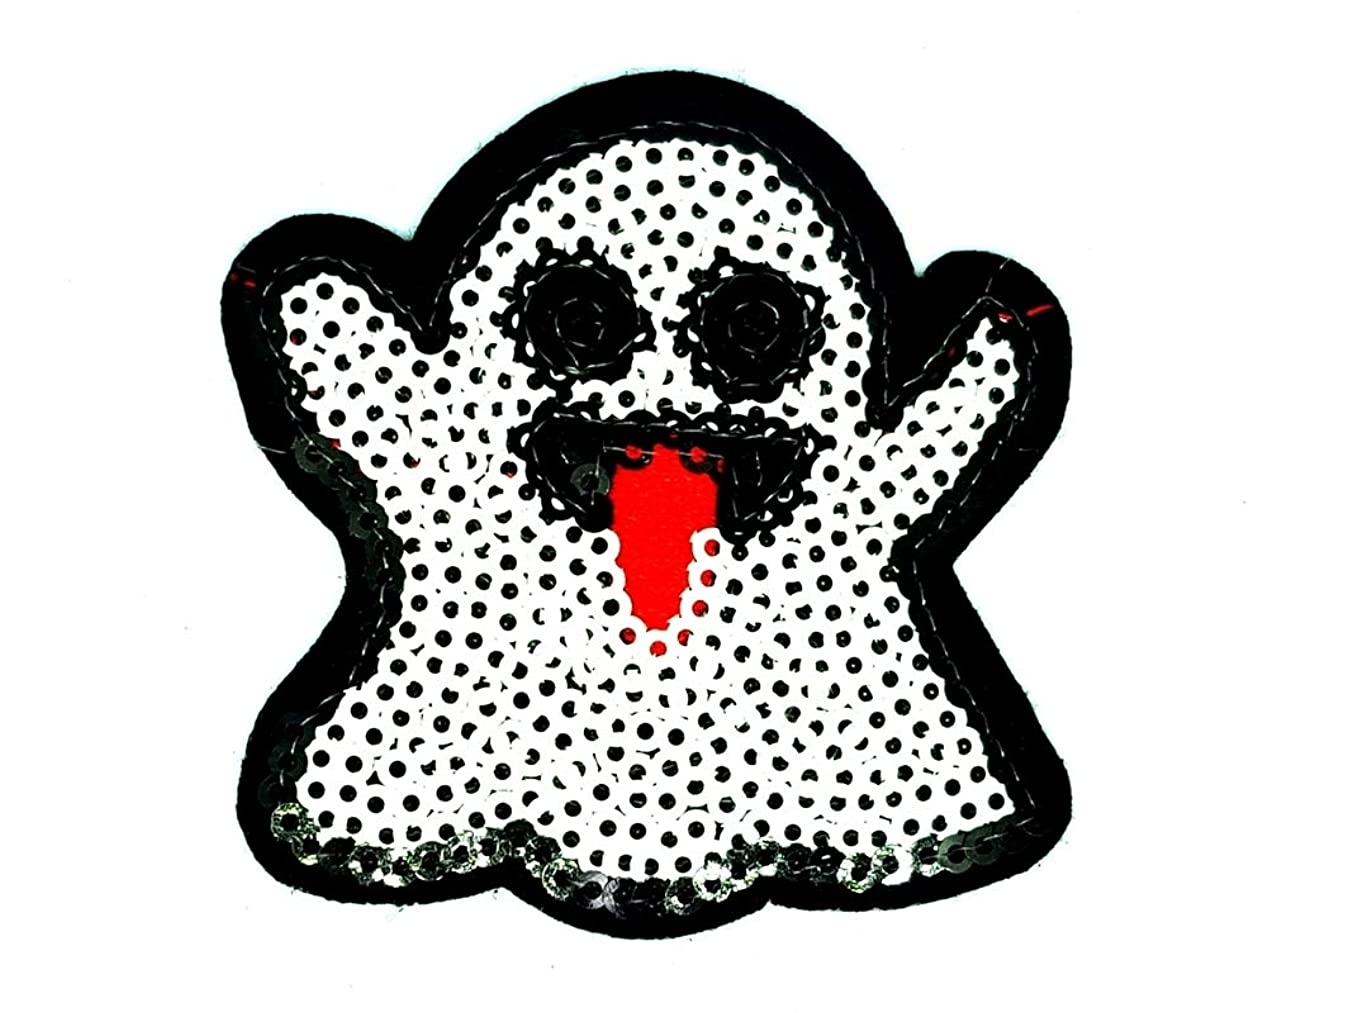 PP Patch Cute Ghost Boo Happy Halloween Emoji Sequins Glitter Twinkling Sparkling Cartoon Patch for Bags Jacket T-Shirt Embroidered Sign Badge Costume DIY Applique Iron on Patch